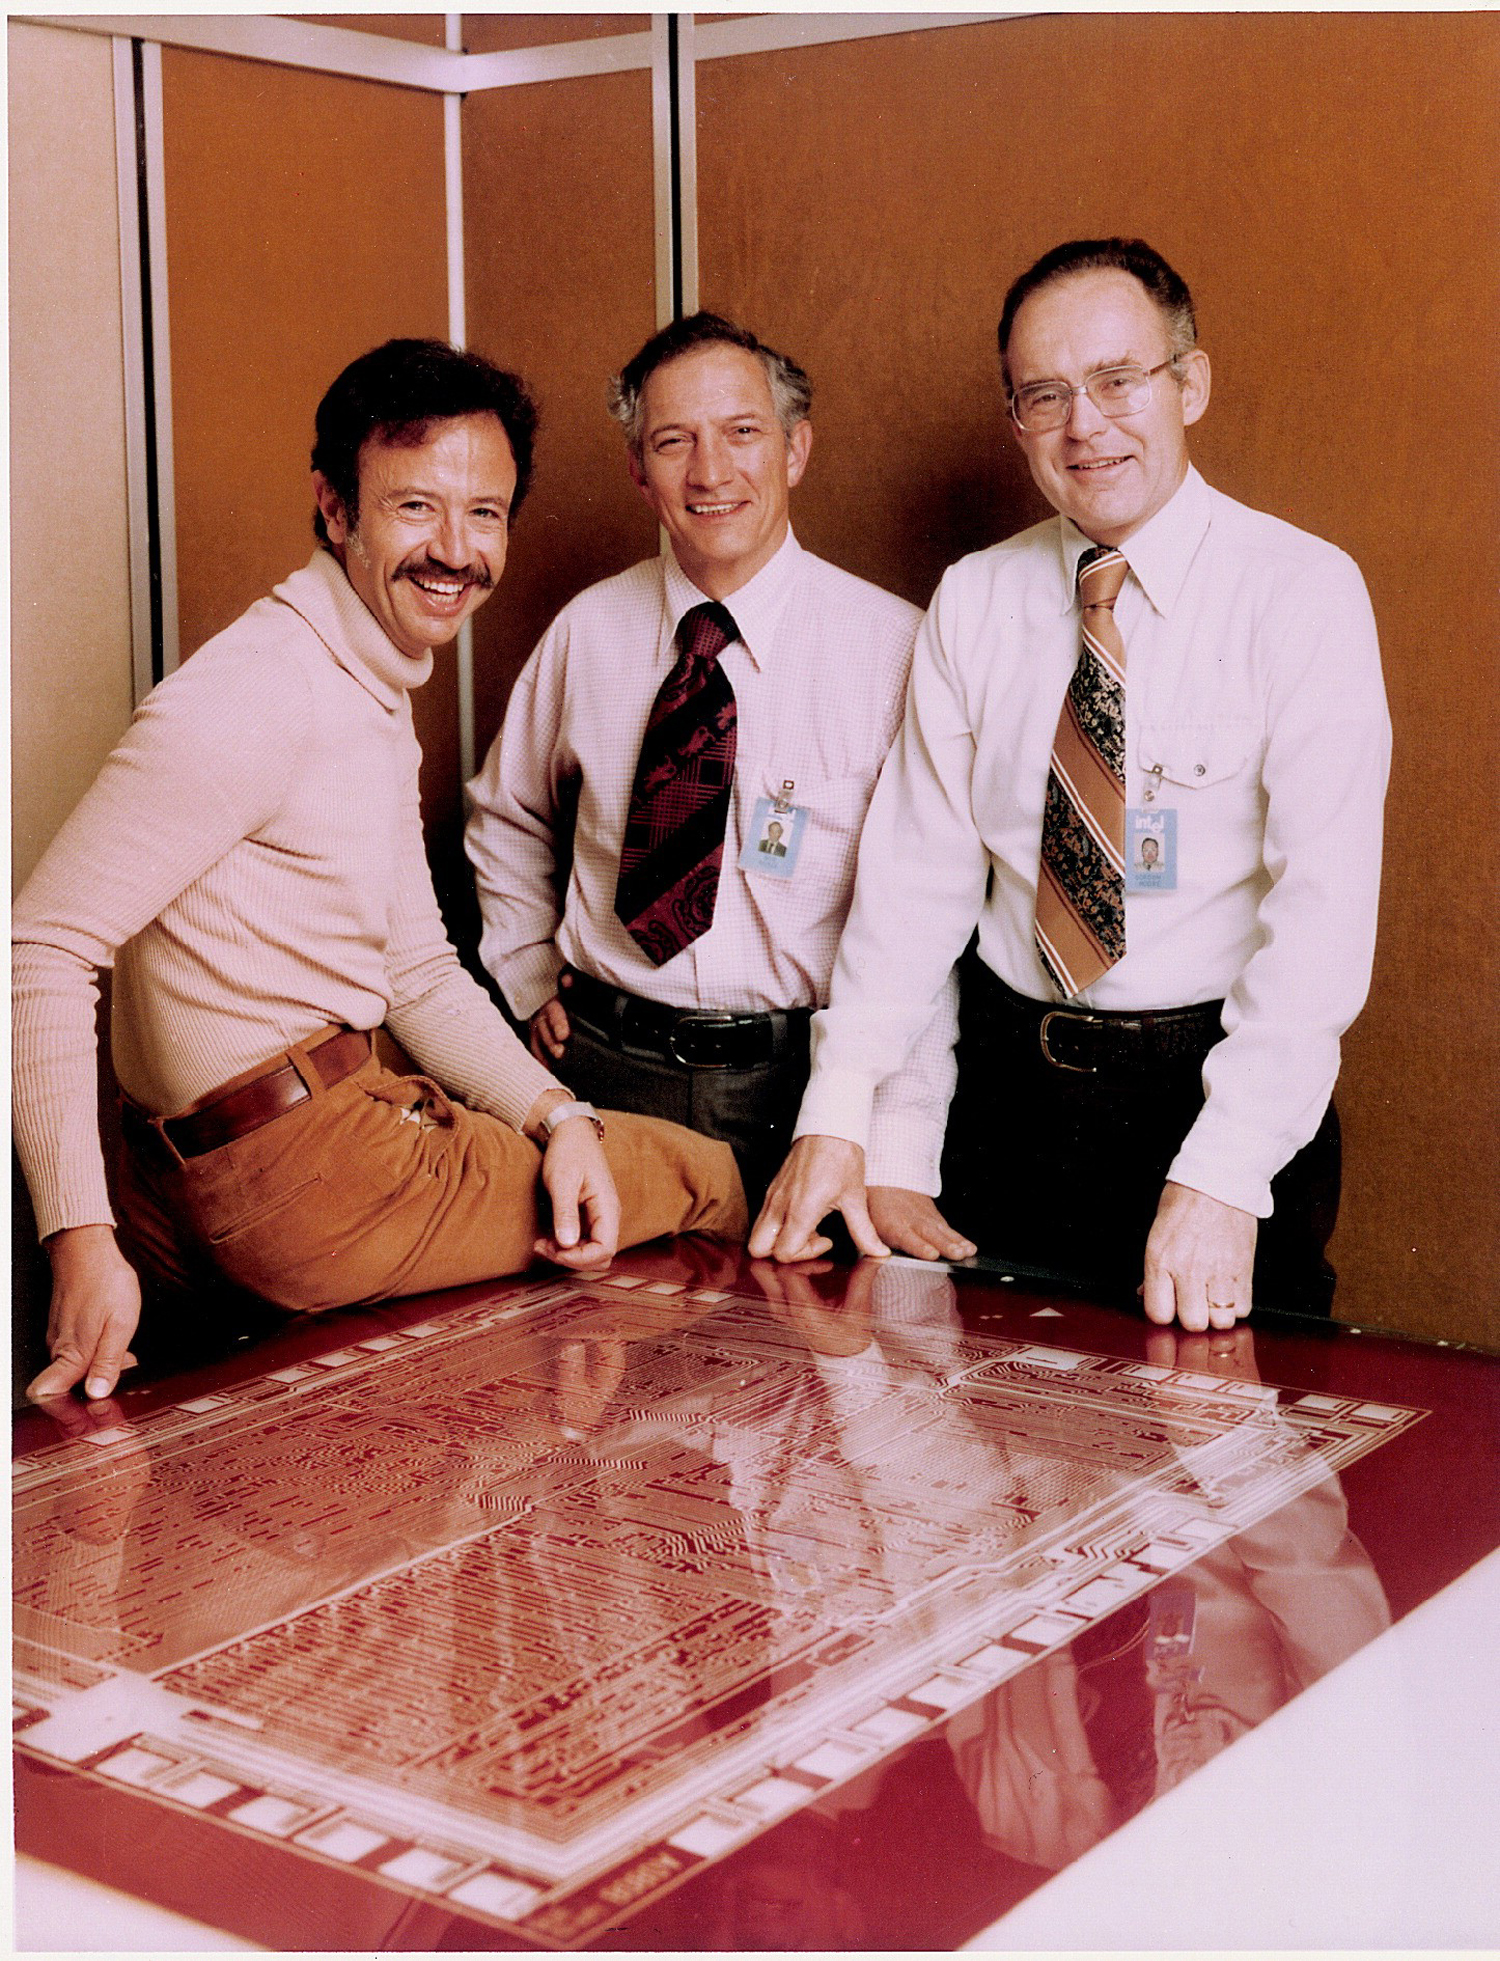 Legendy Intela - Andy Grove (po lewej), Robert Noyce (w środku) and Gordon Moore (po prawej)